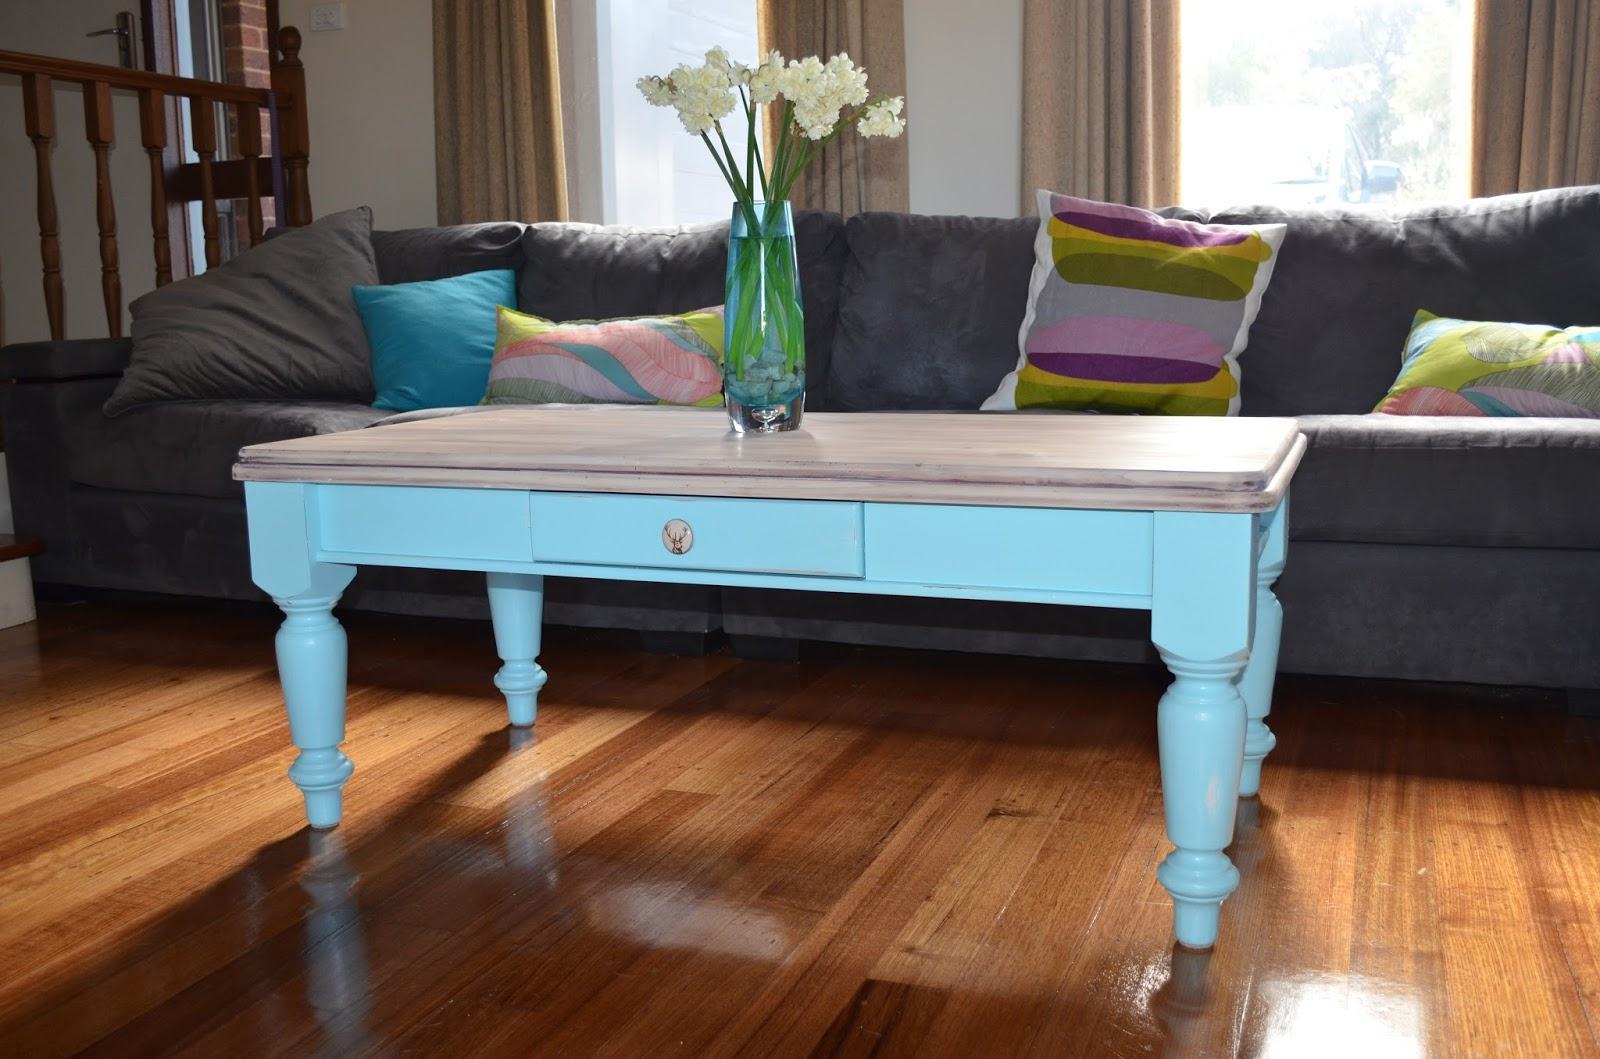 Retro Vintage Love Pale Blue and Whitewashed Distressed Coffee Table